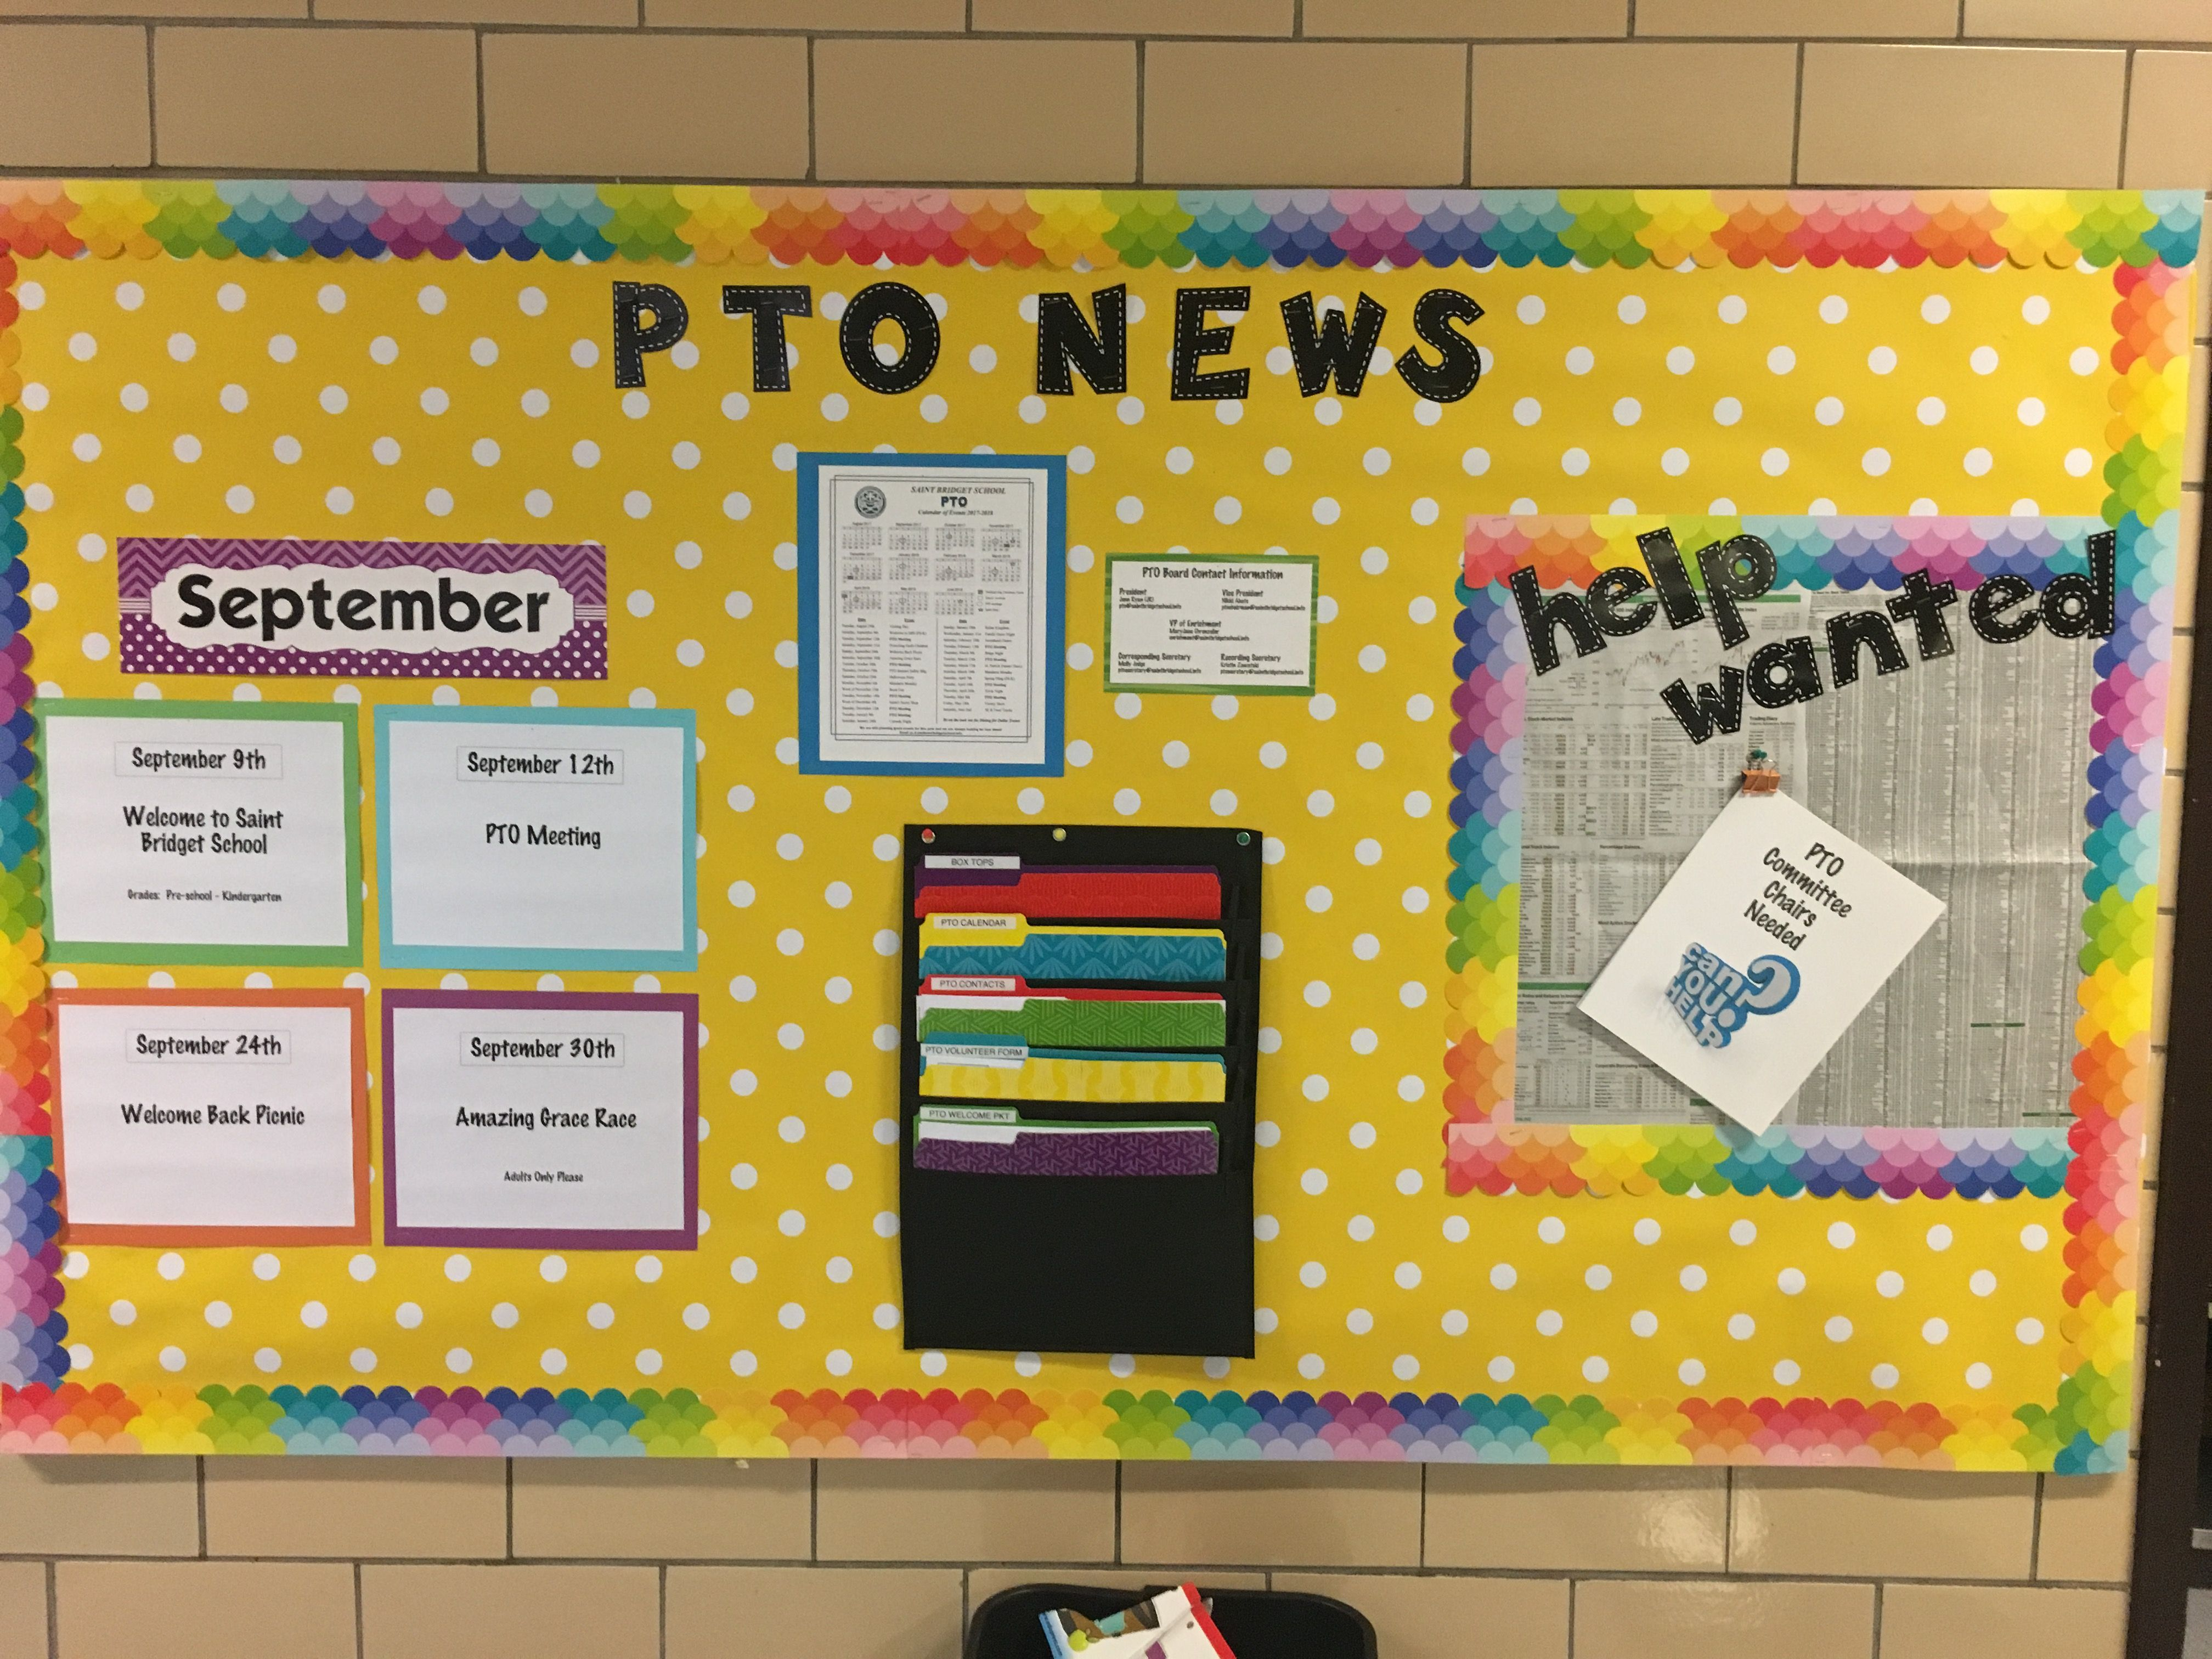 This Is My First Bulletin Board As Pto President I Looked At Pinterest For Ideas And This Is What We Came Up With We W Pto President Pta Board Pta Bulletin